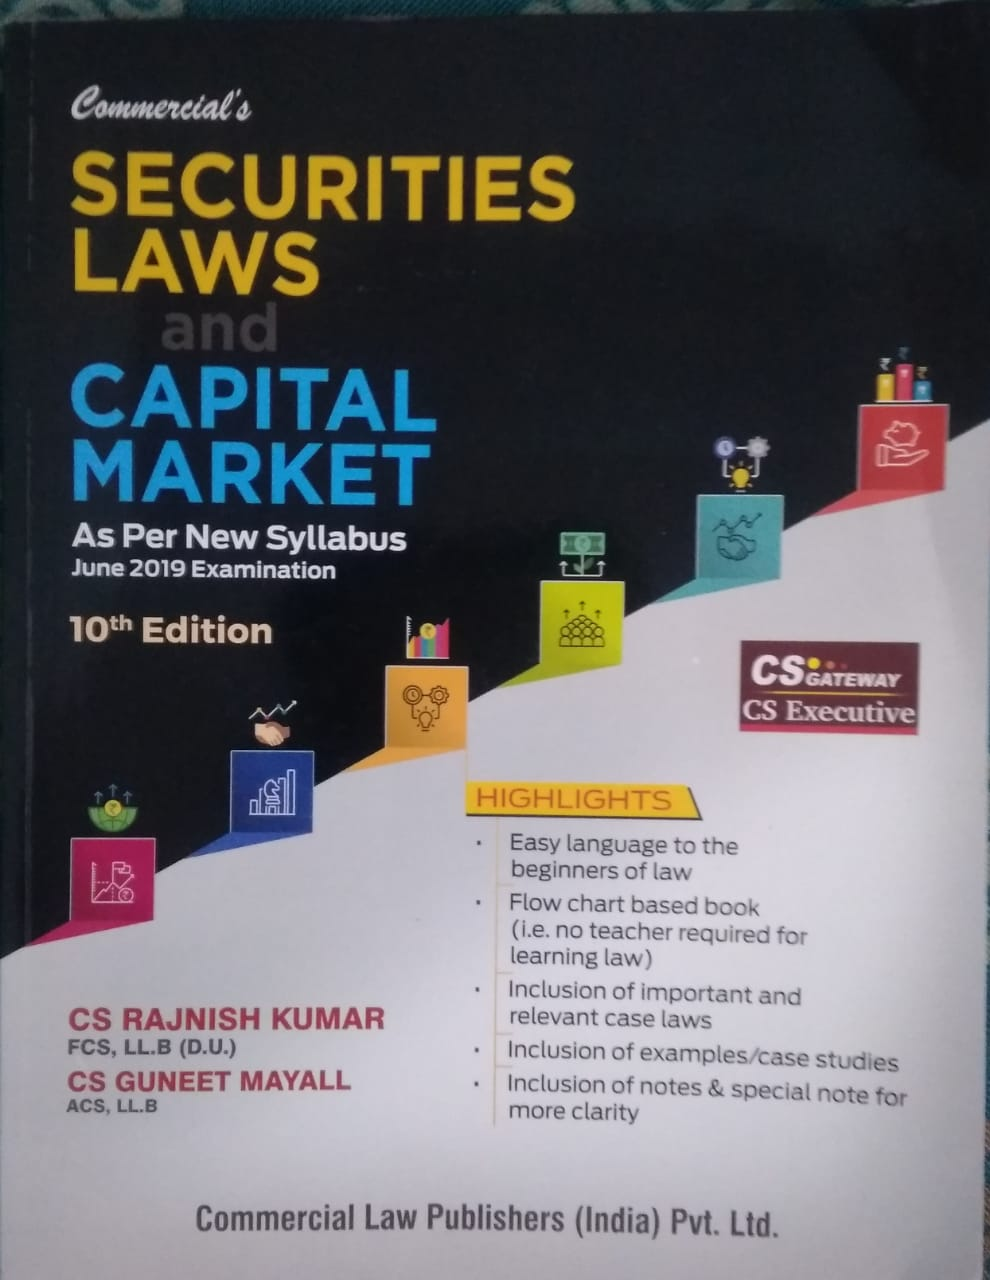 Securities Laws & Capital Market For CS Executive June 2019 Examination New  Syllabus BY CS Rajnish Kumar, CS Guneet Mayall Commercial Law Publishers (